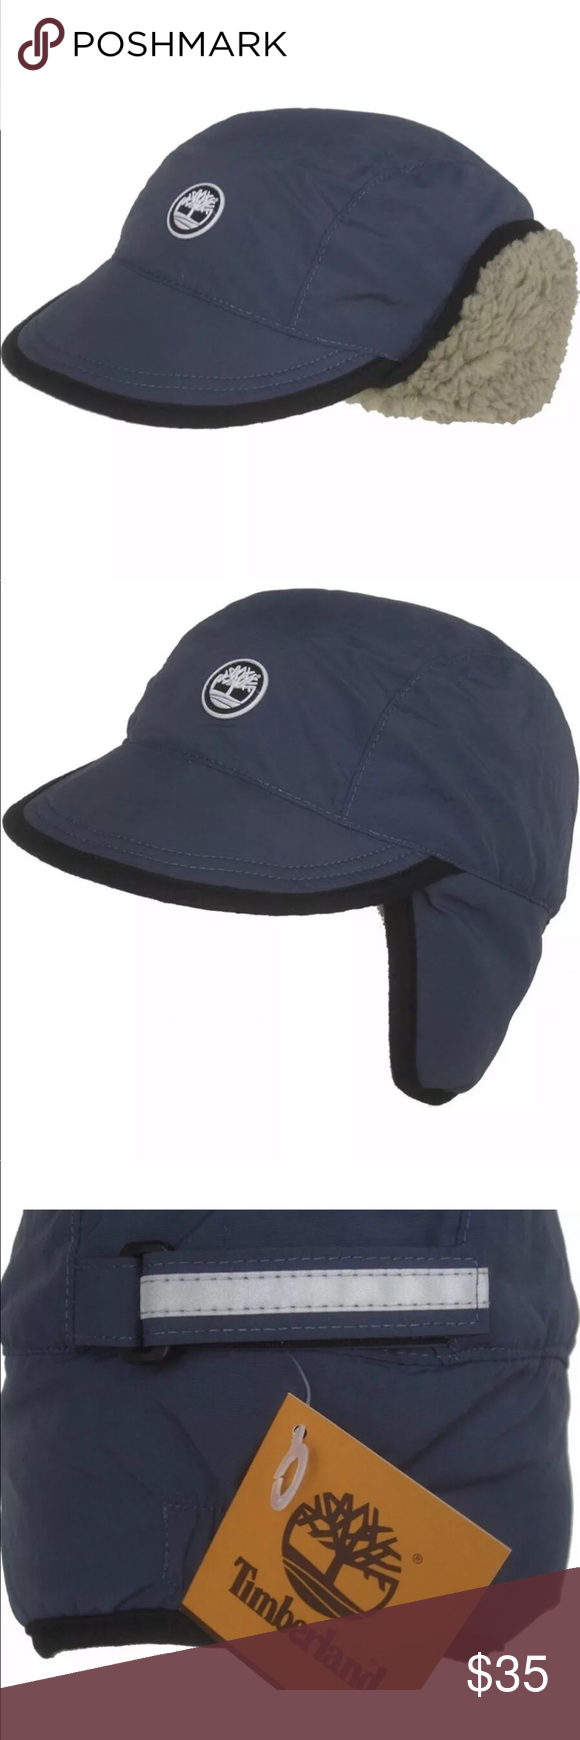 Timberland Water Resistant Ear Flap Trapper Hat Ear Flap Trapper Hats Clothes Design